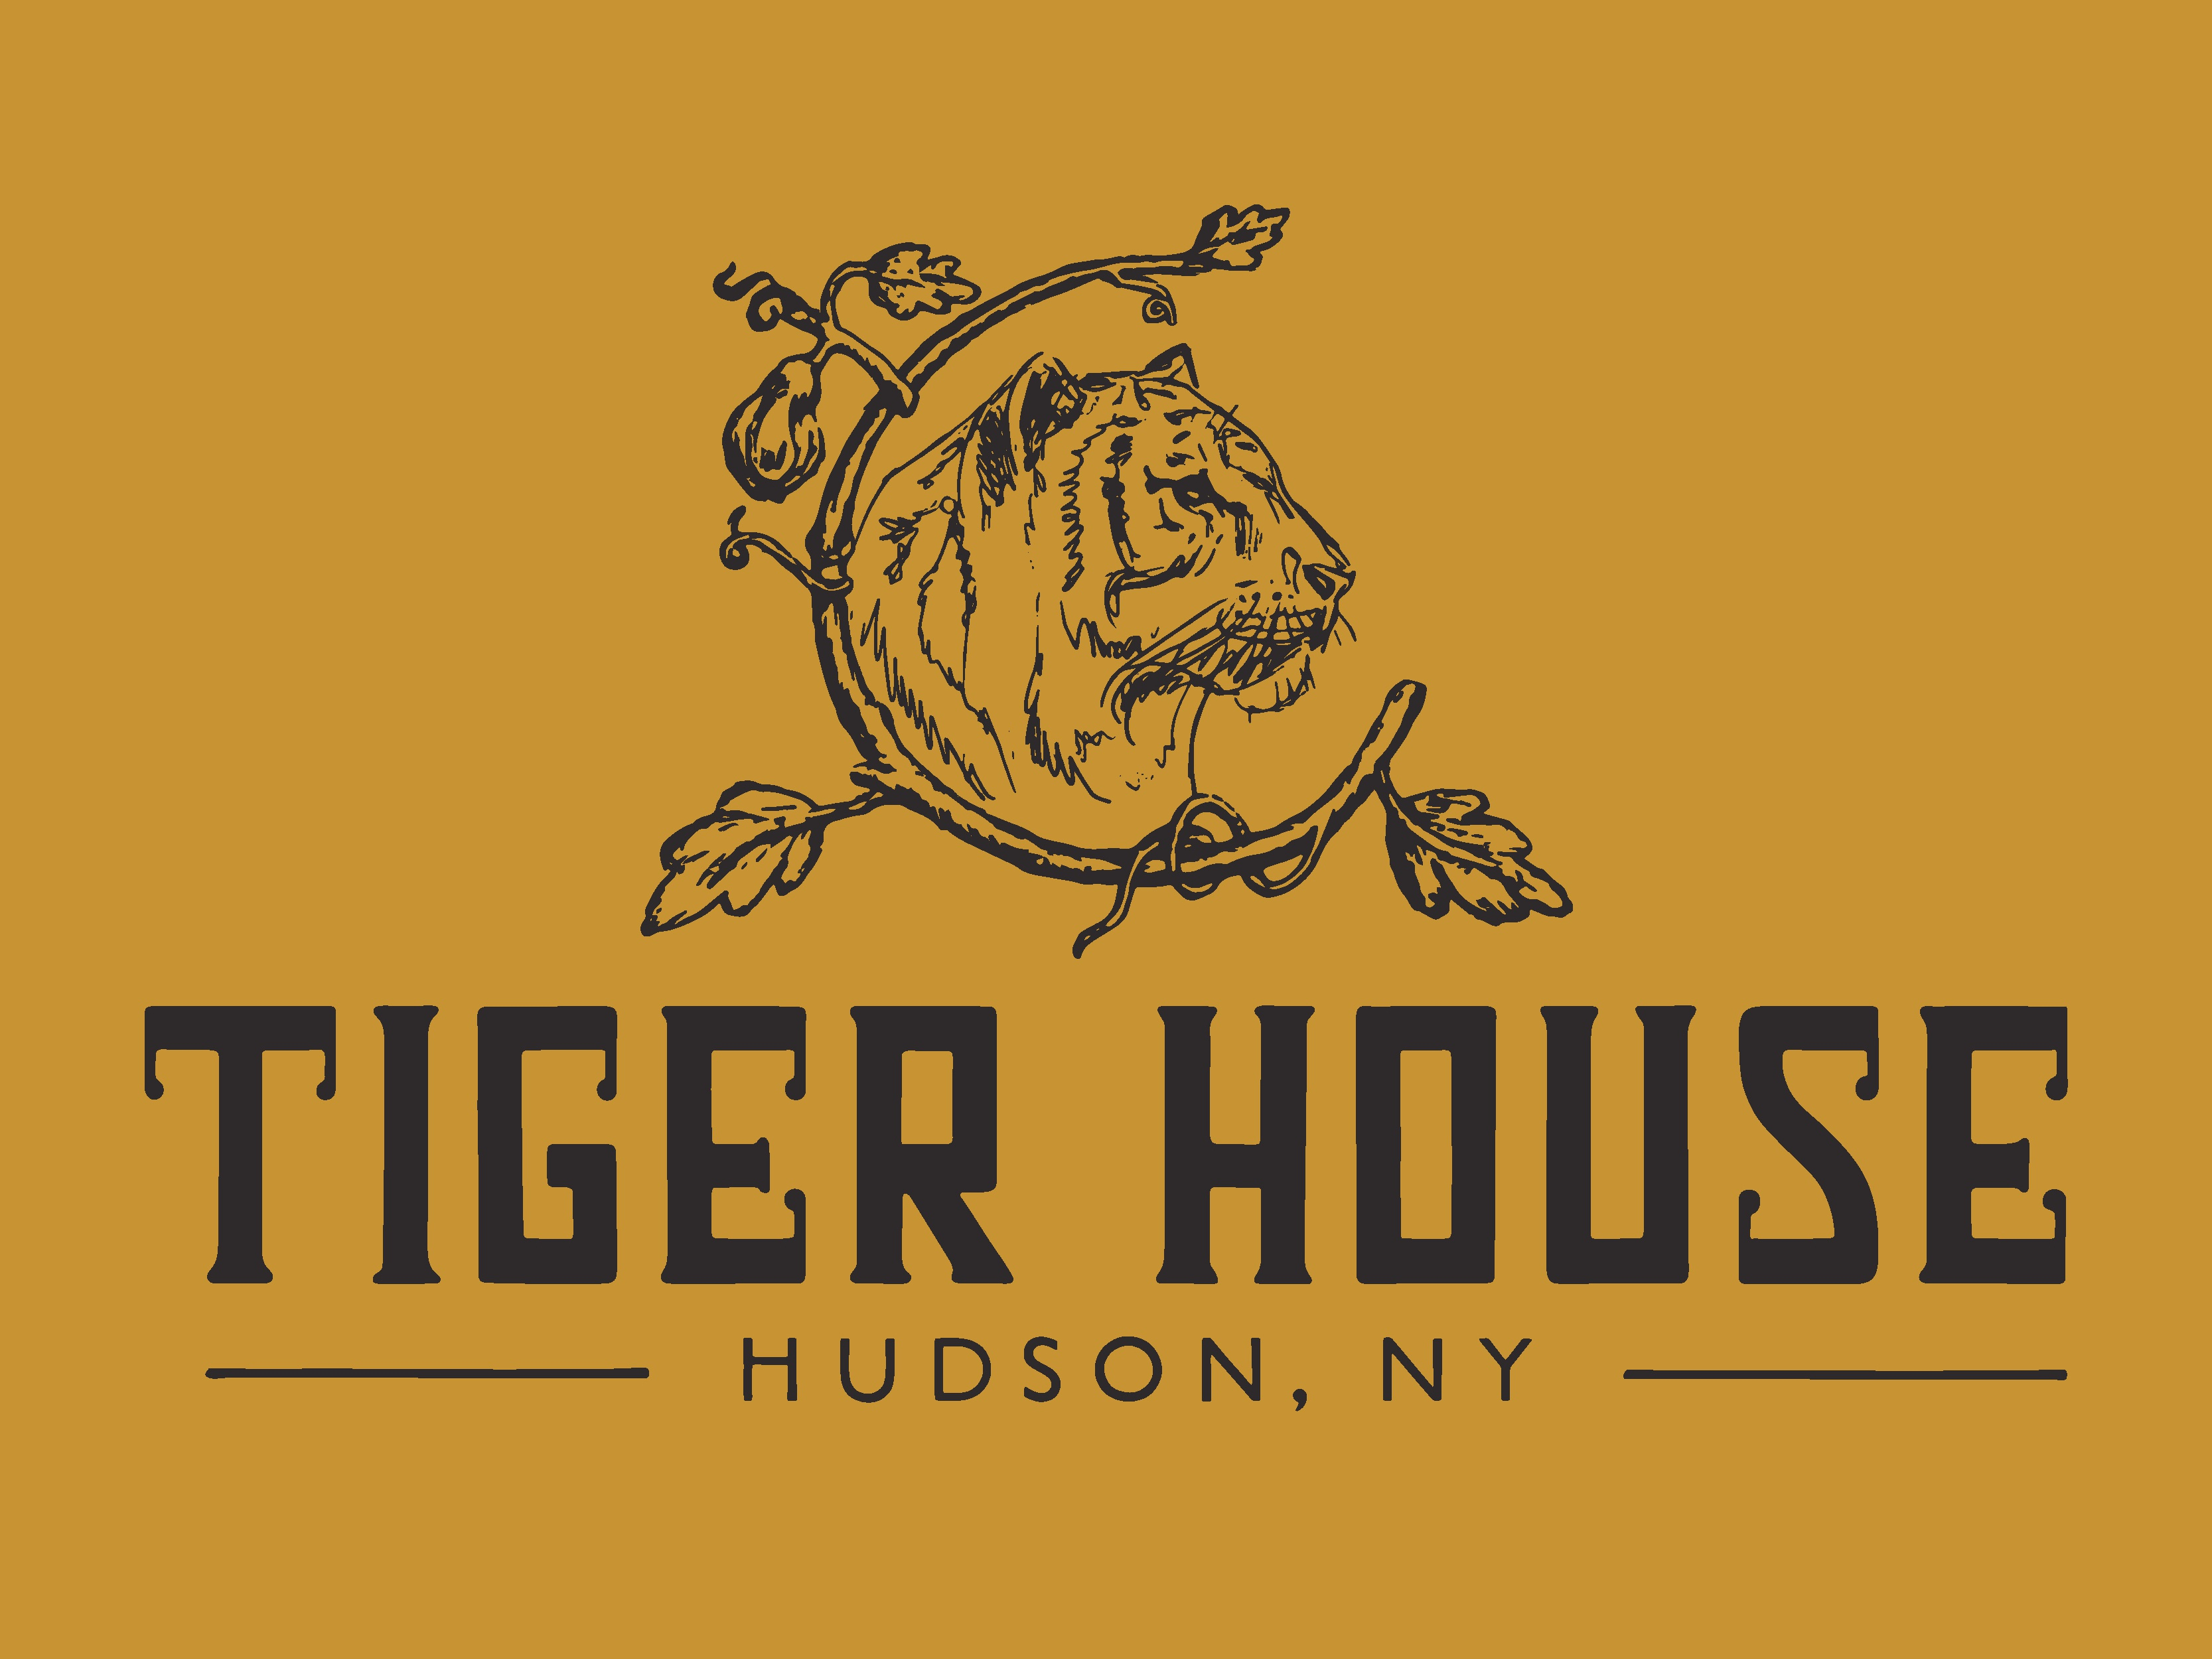 Square graphics   2019 tiger house